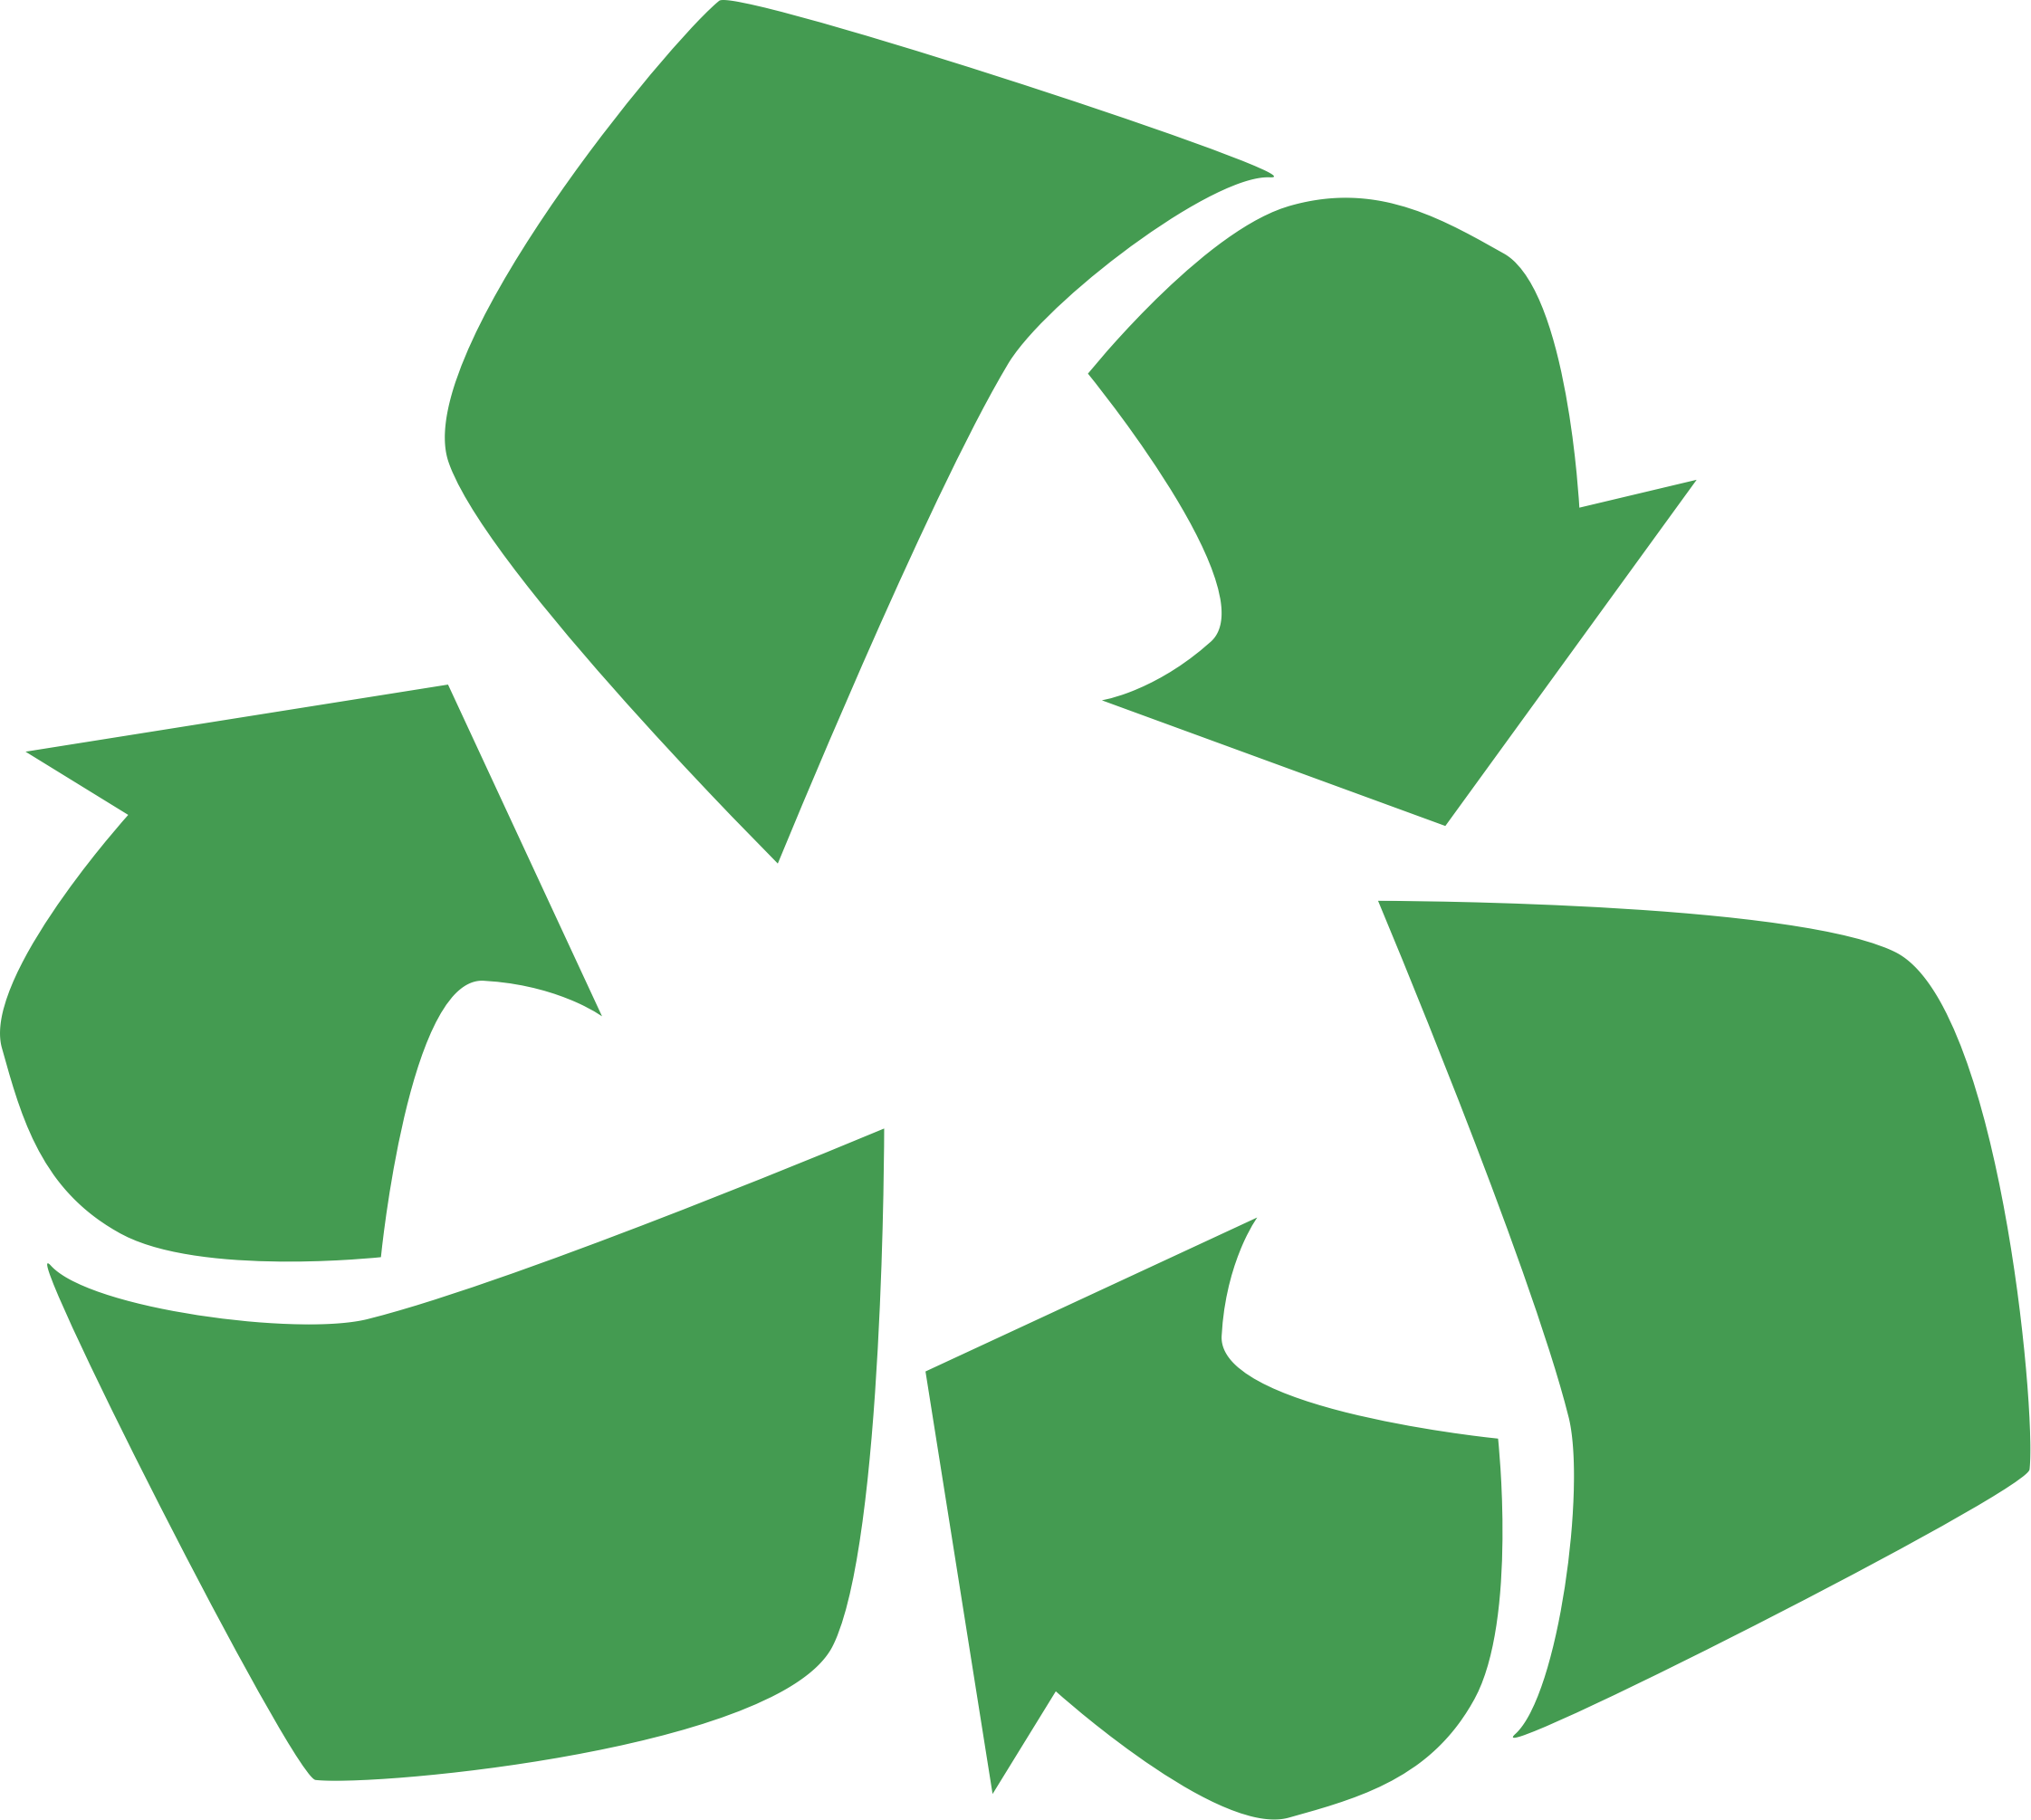 BIG IMAGE (PNG) - PNG Recycle